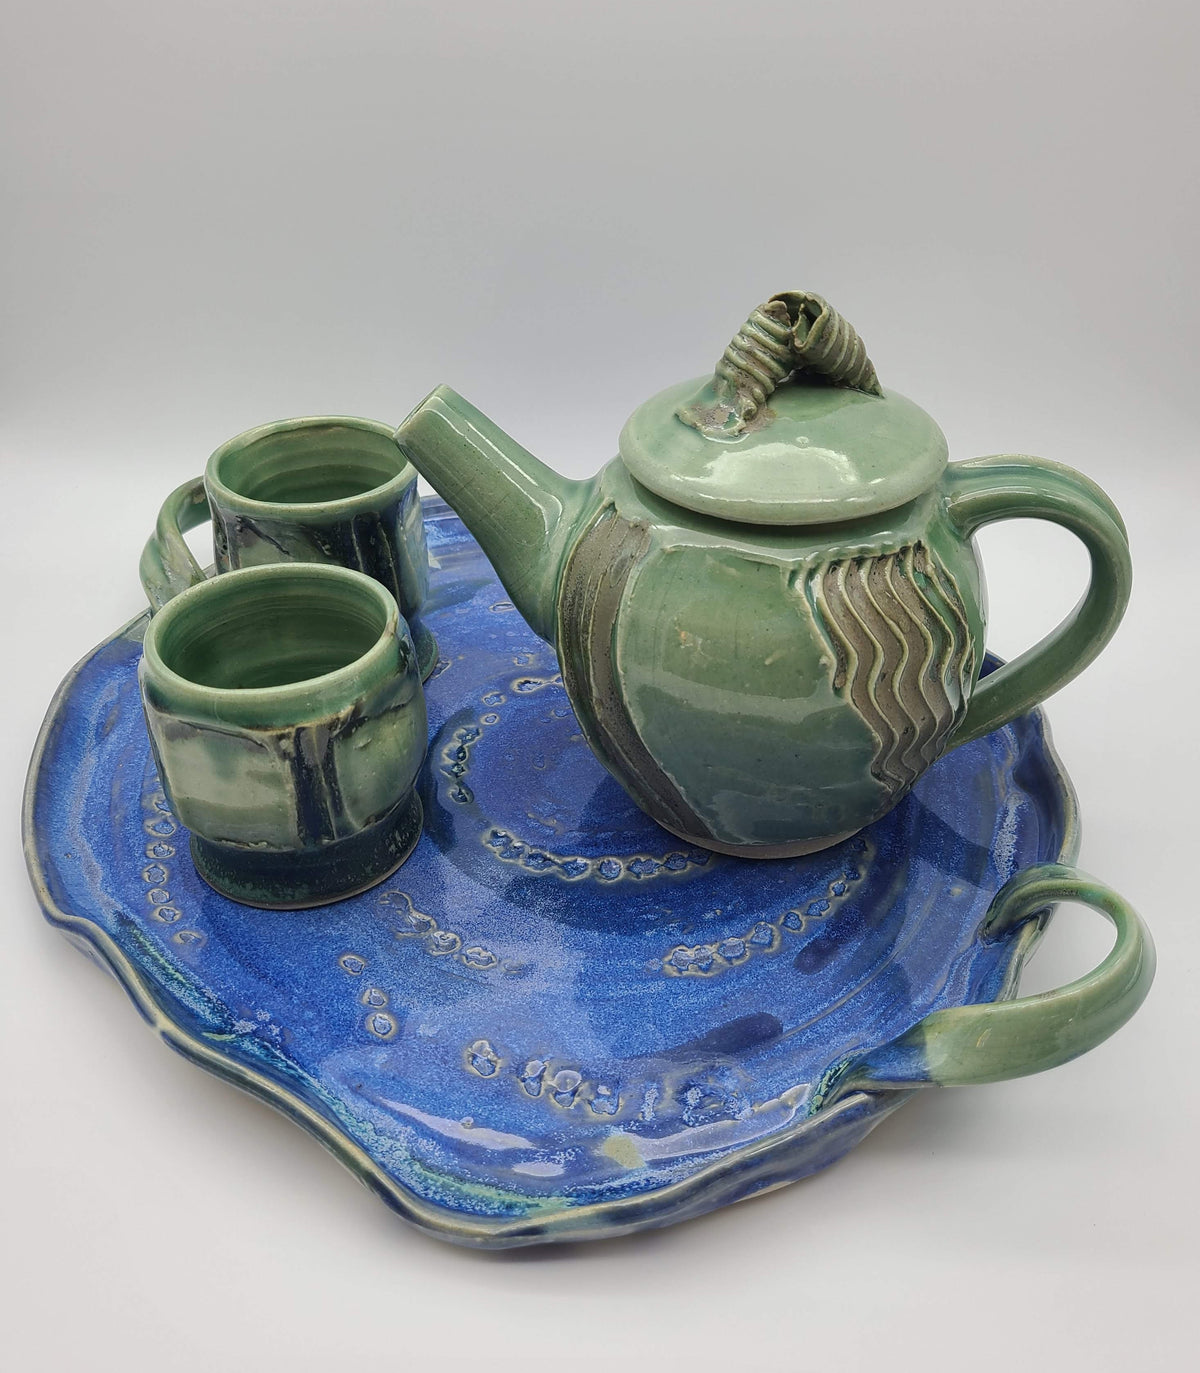 Pottery Teacups - Reflection and Ripples